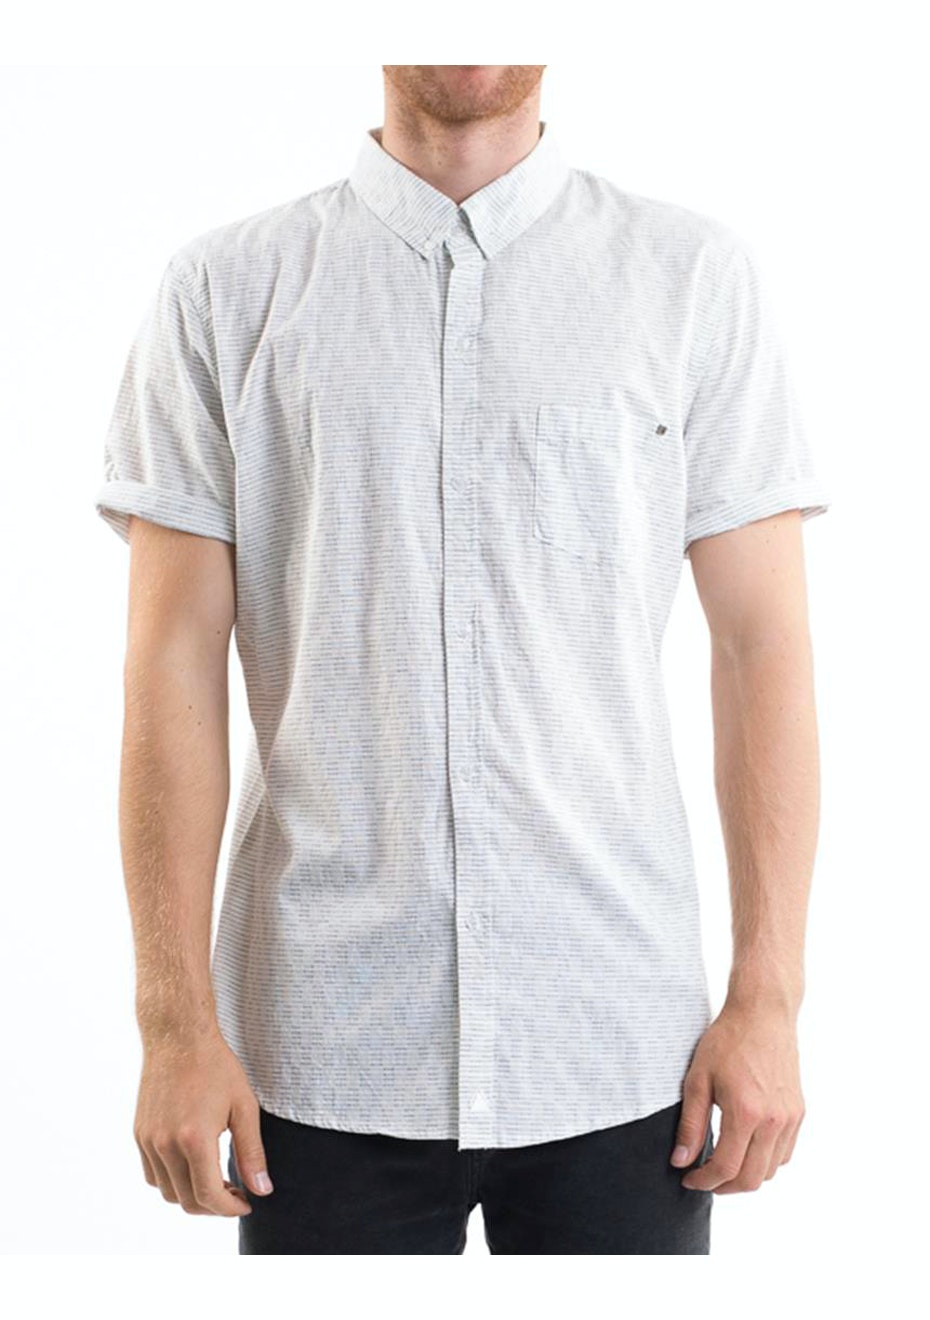 Deacon - Focus SS Shirt - White